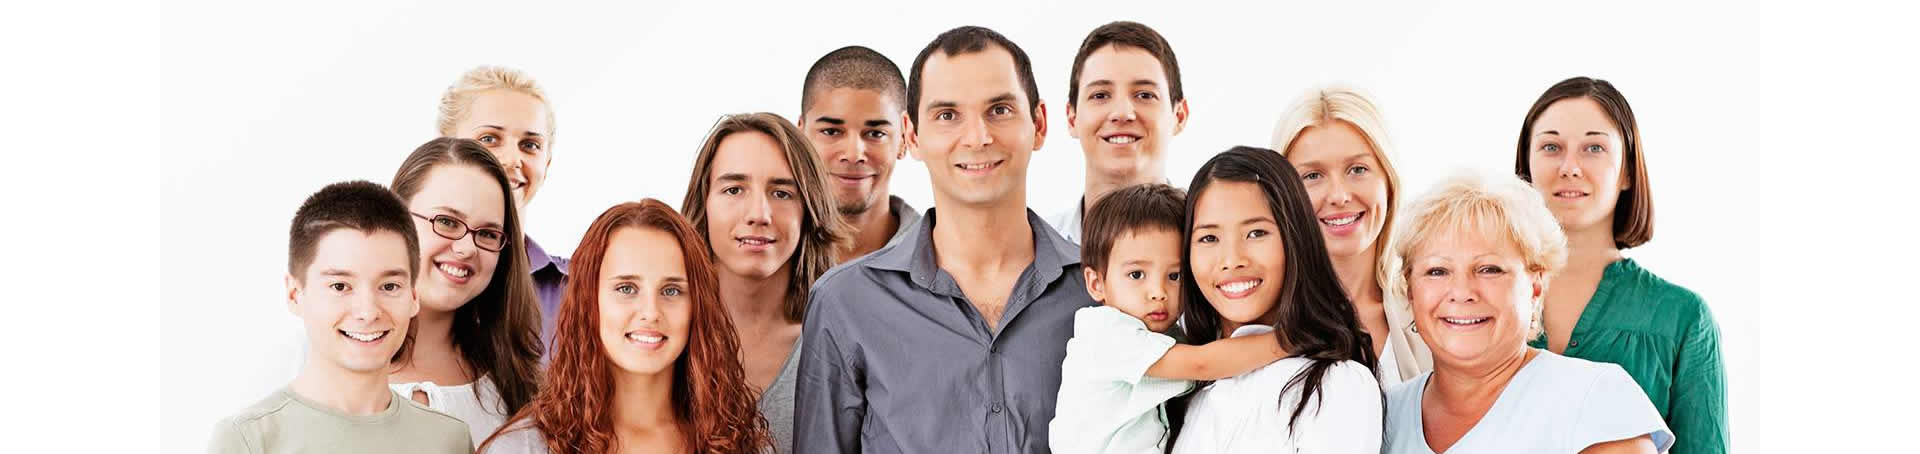 Family Support Wales - Community support for children and adults